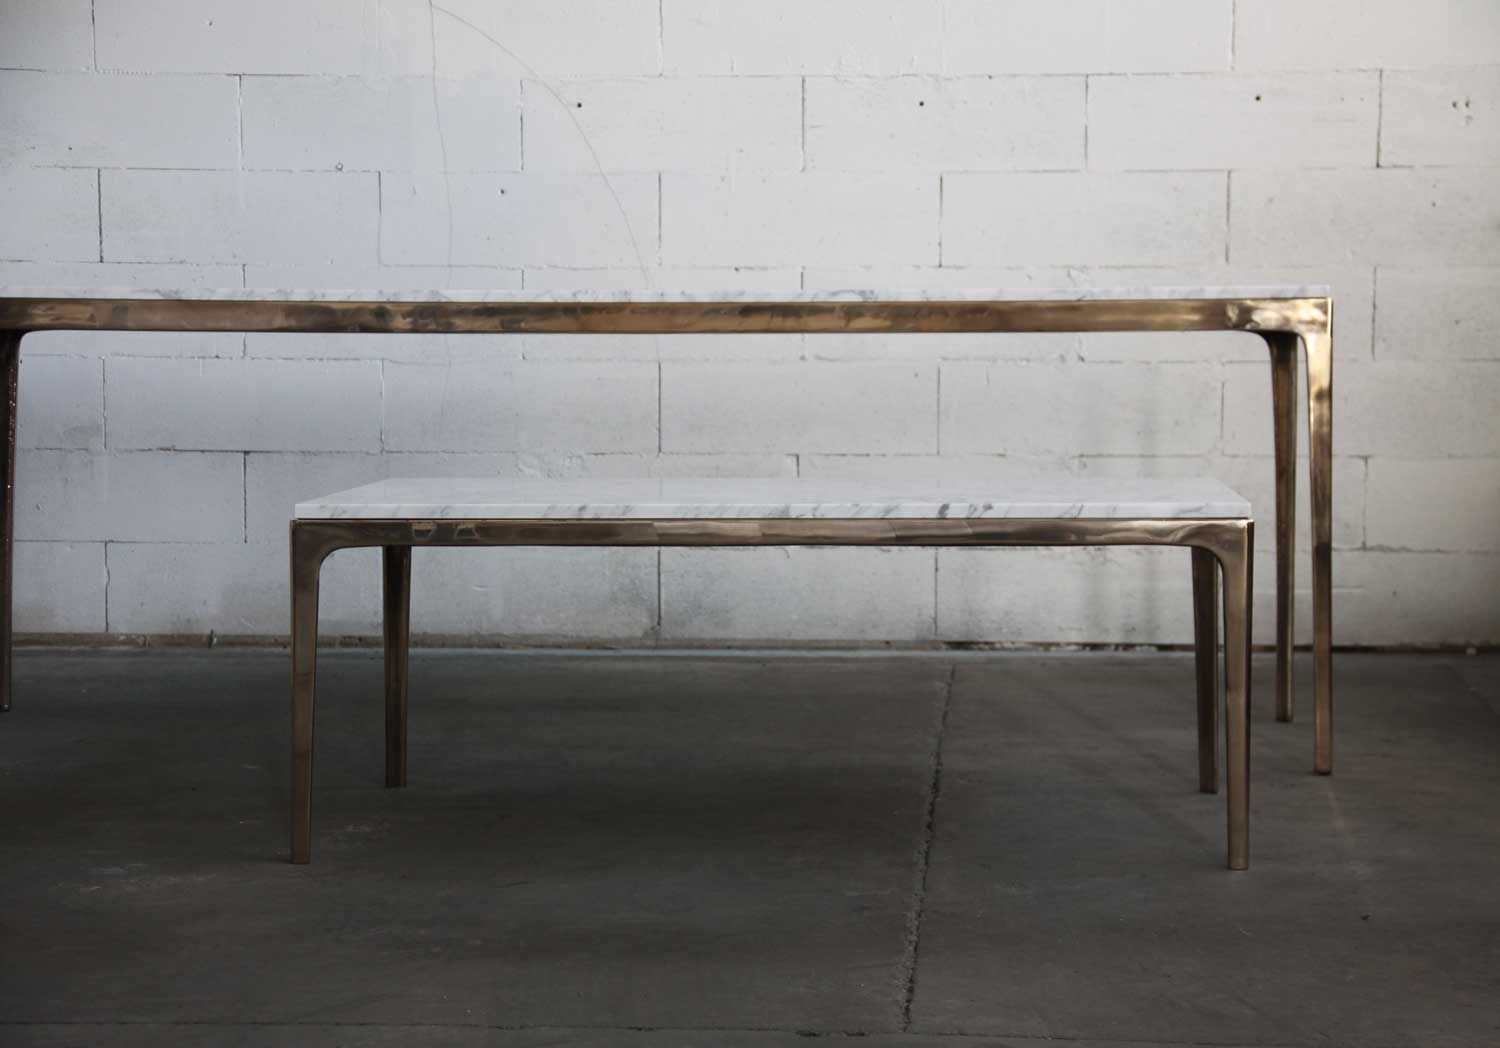 Gallery Of Bronze Console Table By Barbera Local Australian Furniture, Lighting & Object Design Melbourne, Vic Image 1